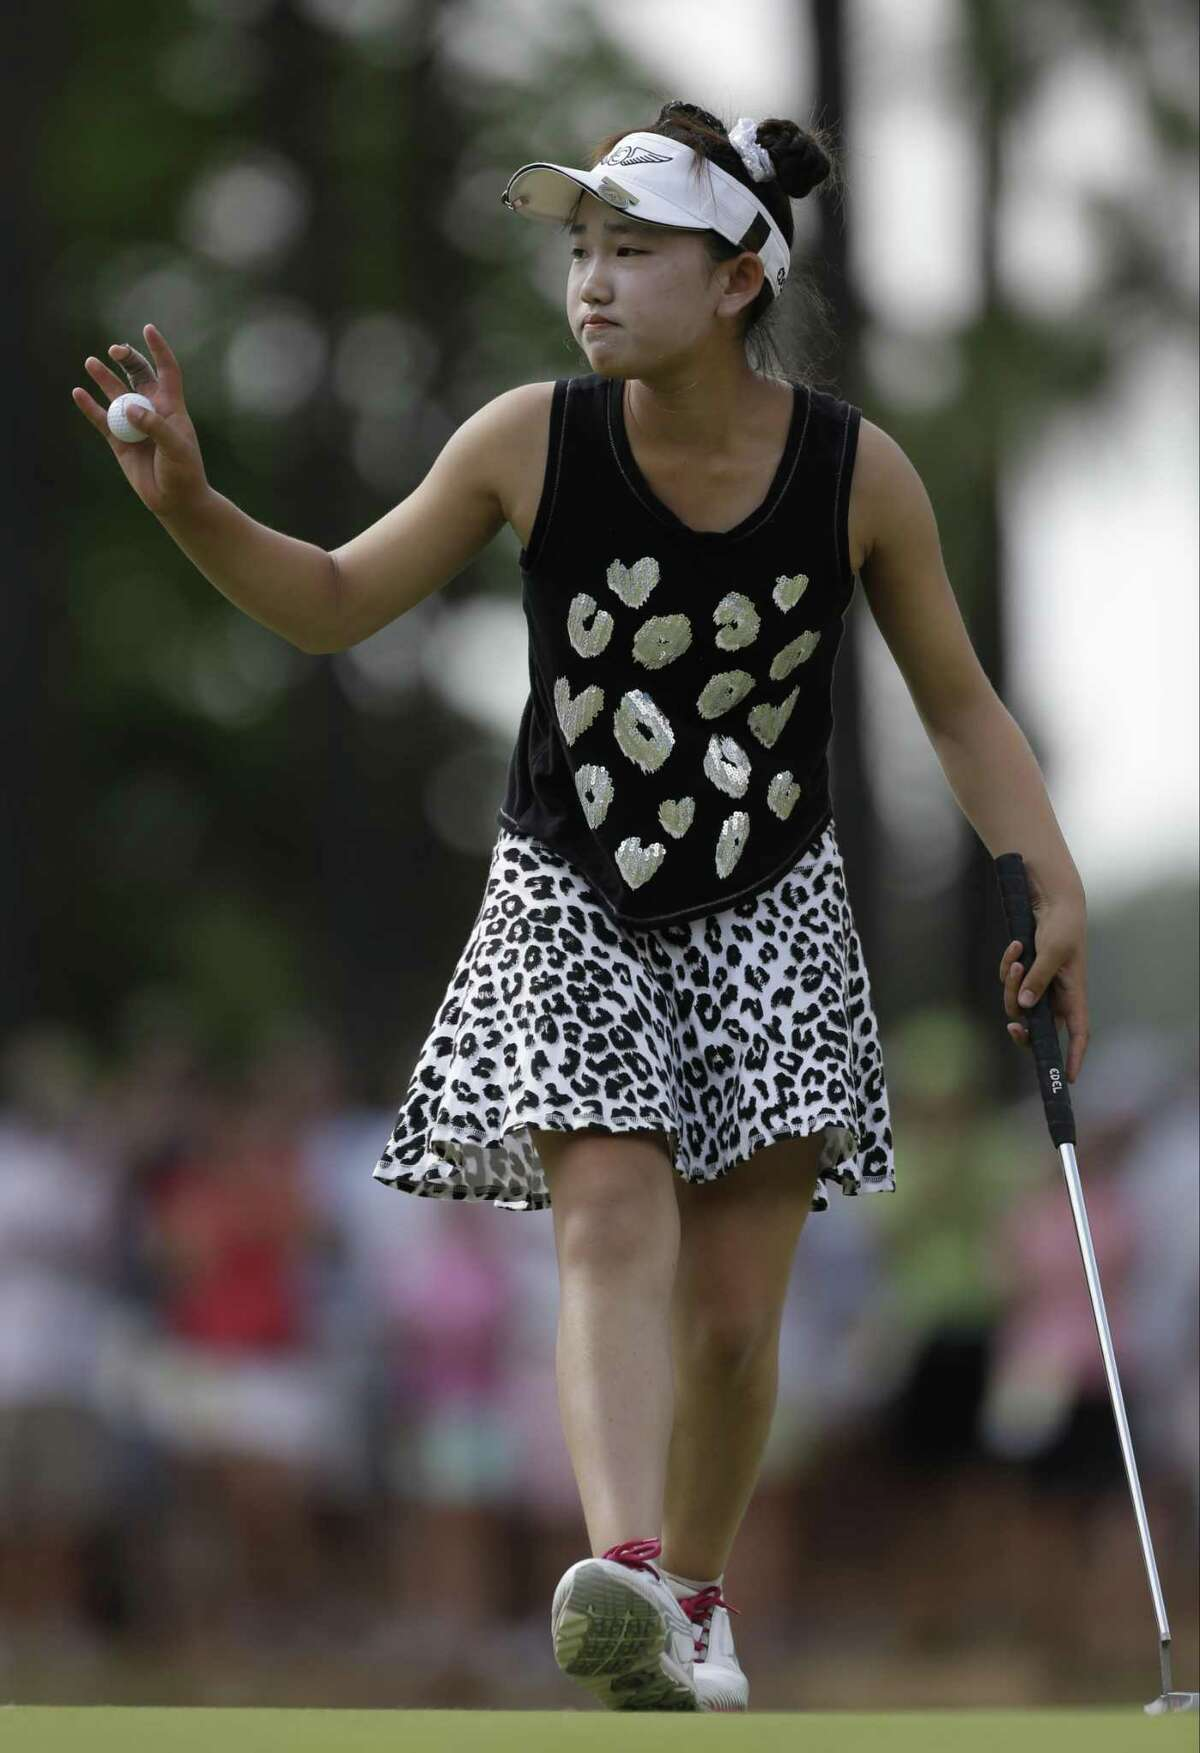 Lucy Li reacts after making a putt on the 13th hole during the second round of the U.S. Women's Open golf tournament in Pinehurst, N.C., in 2014.